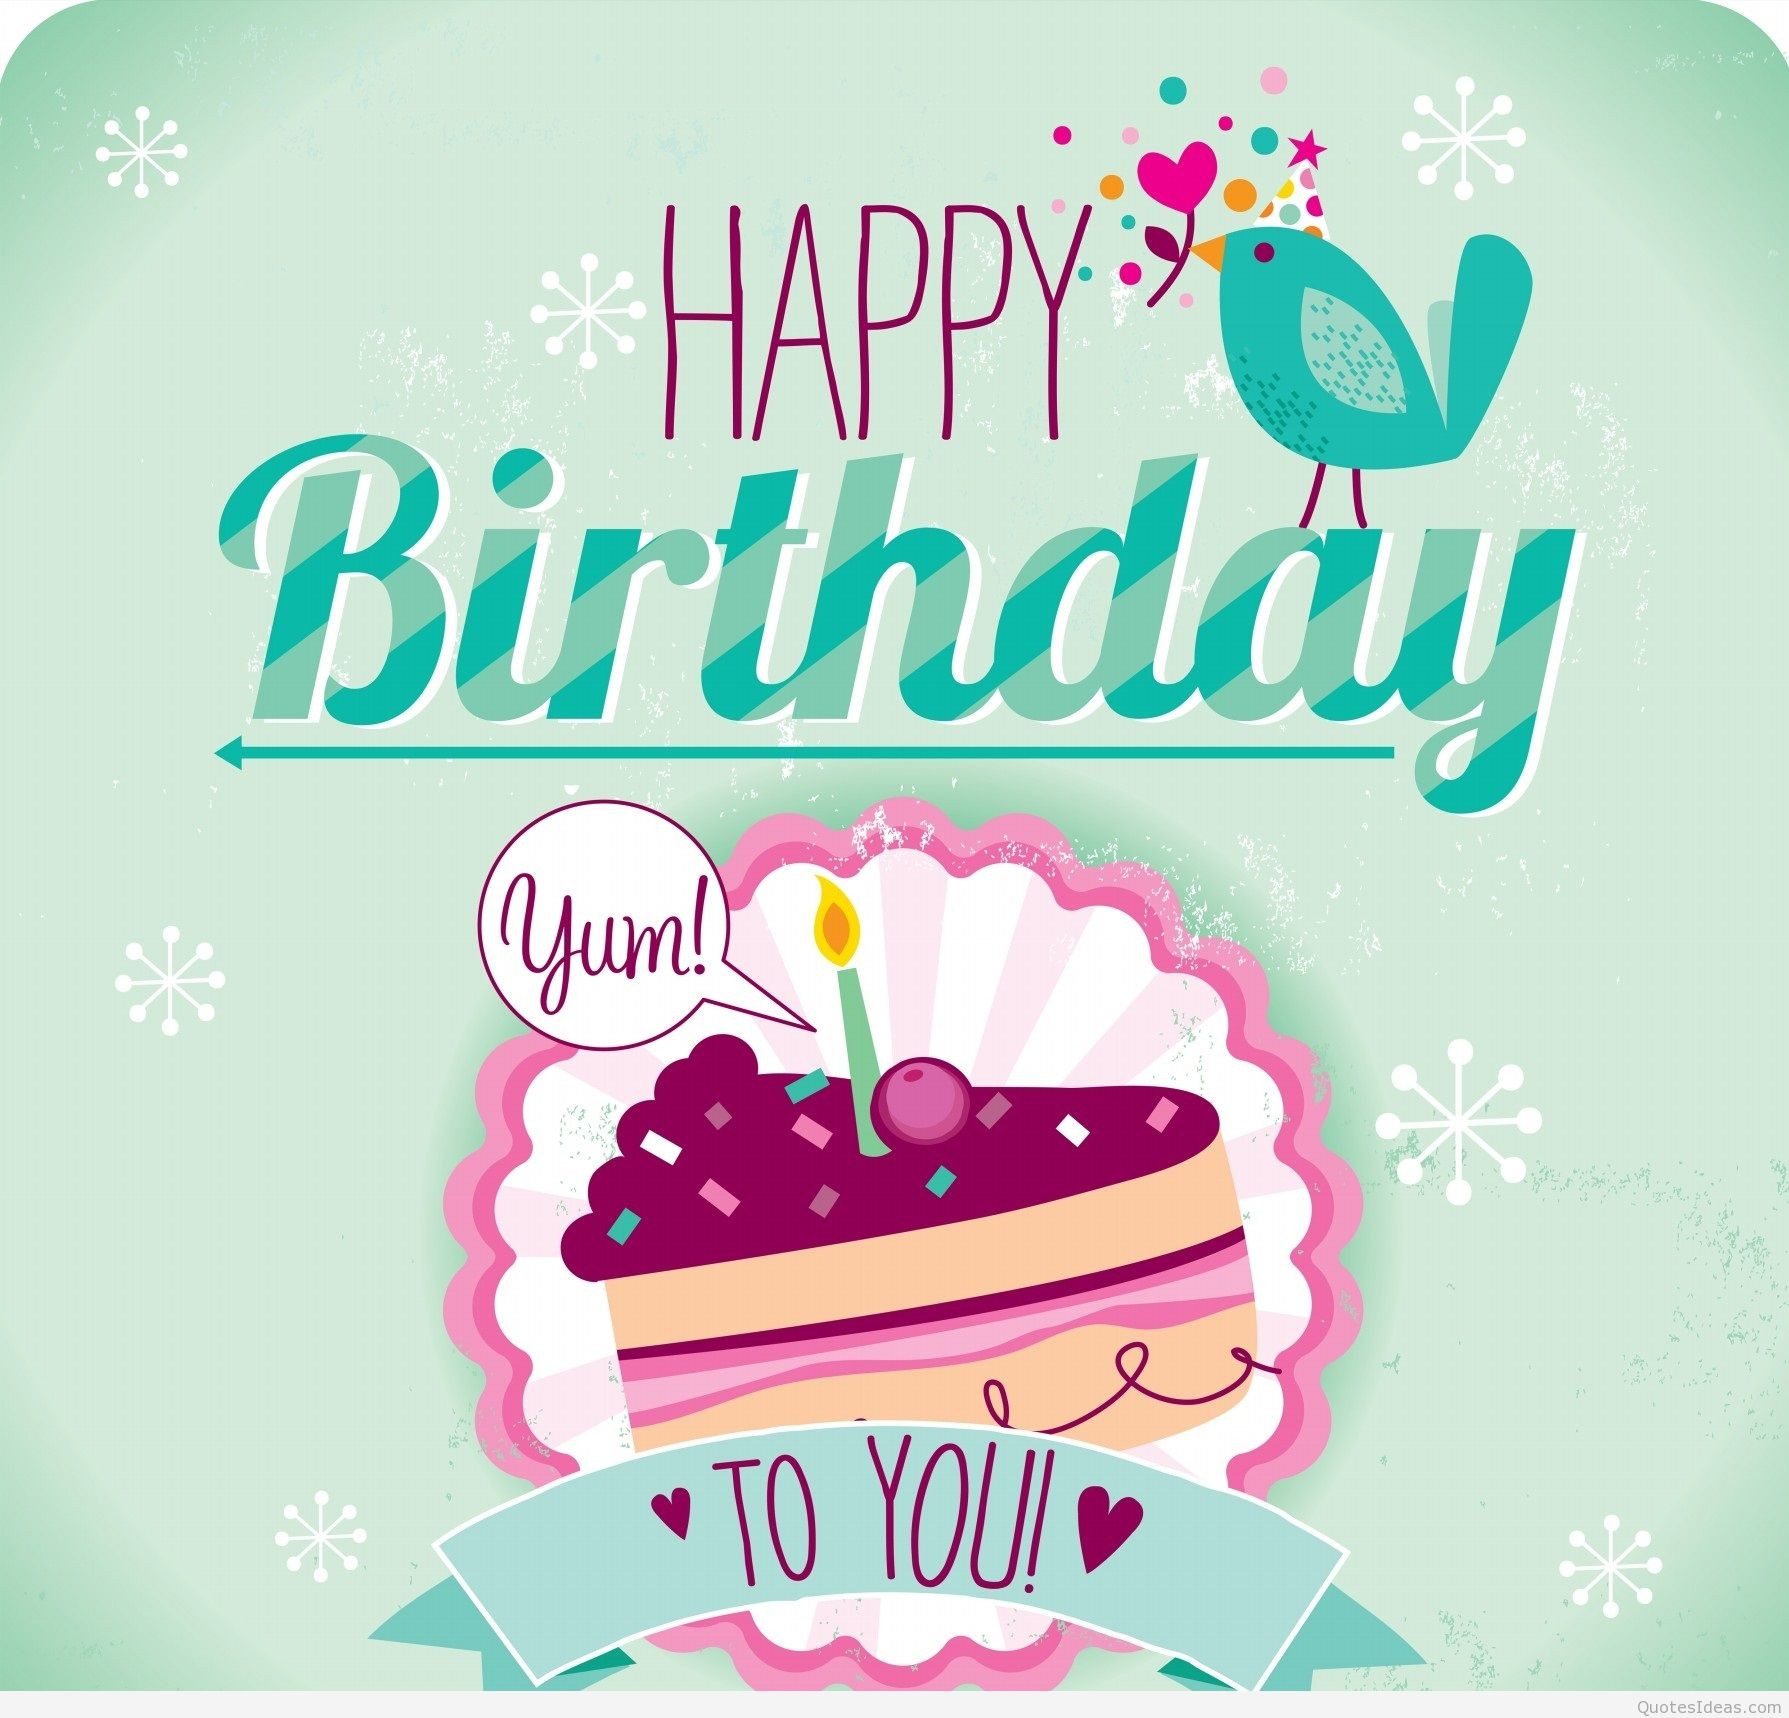 Best ideas about Birthday Card Wishes . Save or Pin Happy birthday cards wishes messages 2015 2016 Now.